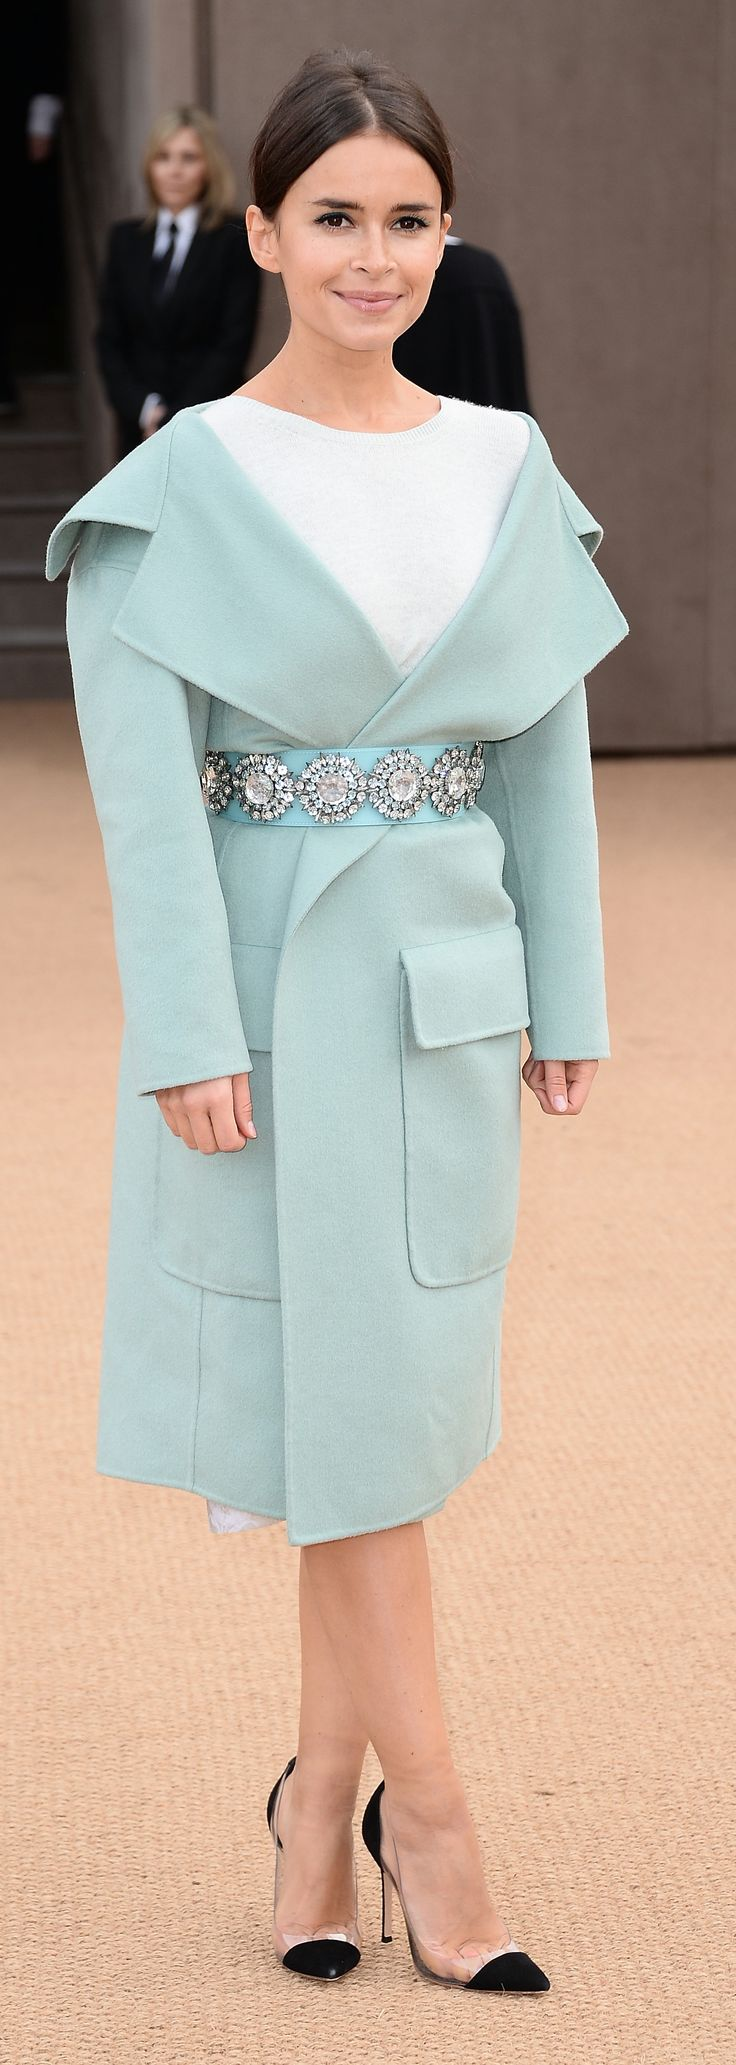 Mira Duma wearing Burberry Prorsum outerwear and a gem embellished belt at the Burberry A/W14 Show in London